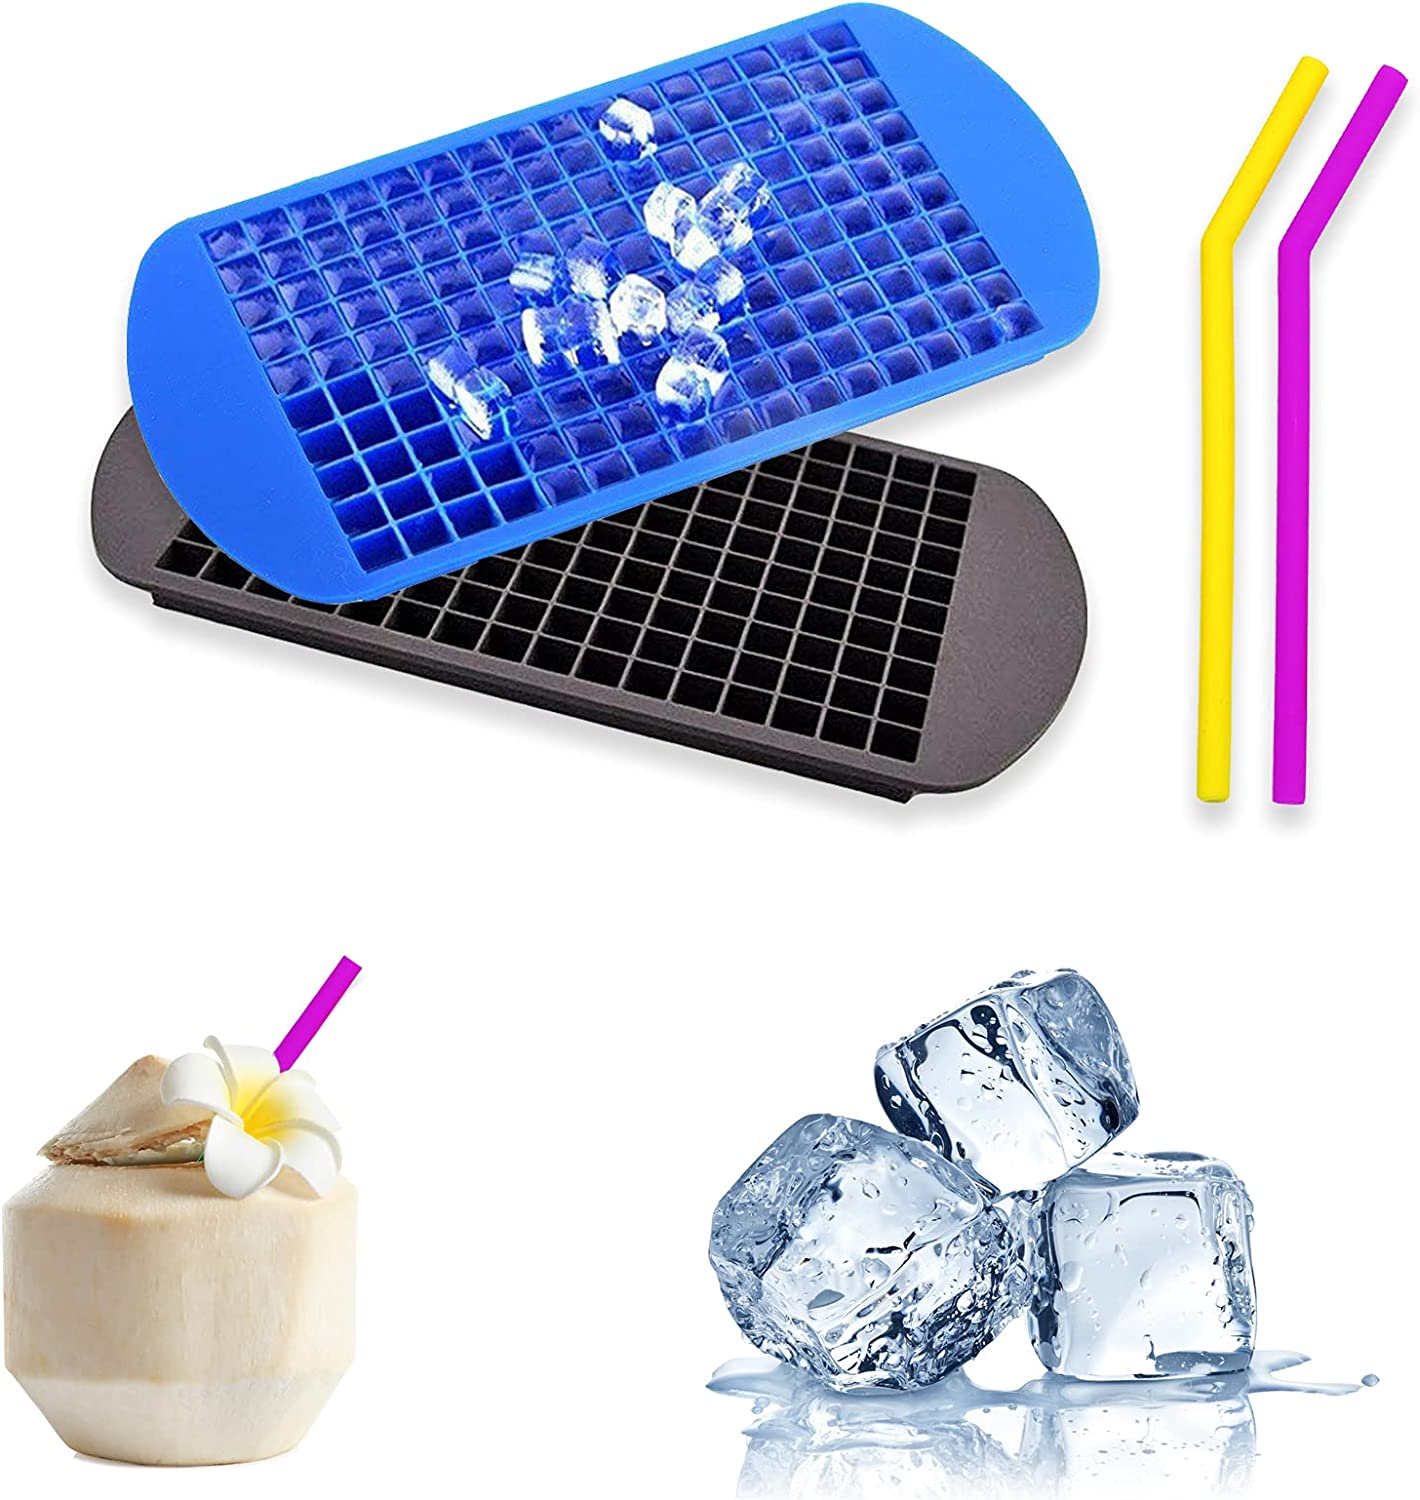 Mini Ice Cube Trays, Tiny Ice Cube Trays, 2 Packs 160 Cavity Small Reusable & BPA Free Silicone Ice Cube Maker for Cooling Party Beverage, Whiskey, Spirits & Liquor Drinks (with 2 Silicone Straws)